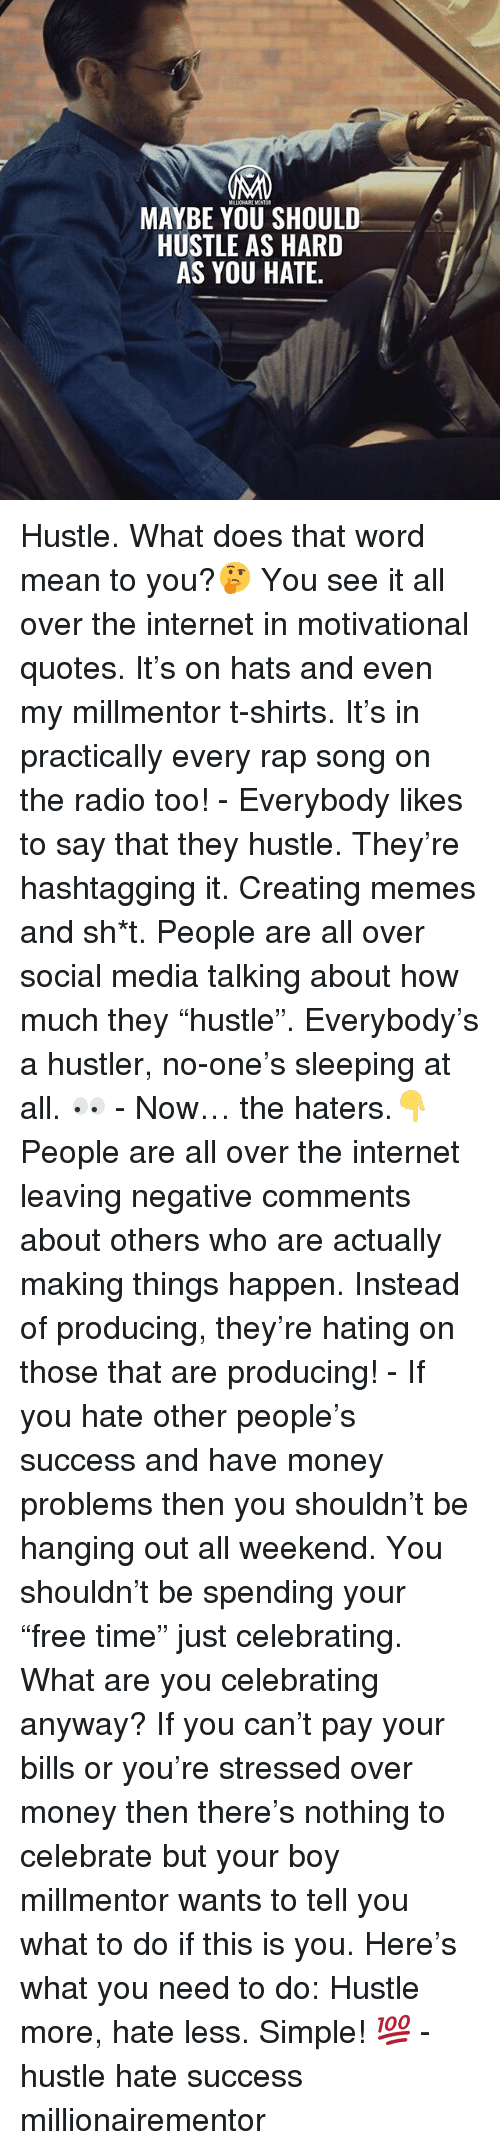 "hustler: MAYBE YOU SHOULD  HUSTLE AS HARD  AS YOU HATE Hustle. What does that word mean to you?🤔 You see it all over the internet in motivational quotes. It's on hats and even my millmentor t-shirts. It's in practically every rap song on the radio too! - Everybody likes to say that they hustle. They're hashtagging it. Creating memes and sh*t. People are all over social media talking about how much they ""hustle"". Everybody's a hustler, no-one's sleeping at all. 👀 - Now… the haters.👇 People are all over the internet leaving negative comments about others who are actually making things happen. Instead of producing, they're hating on those that are producing! - If you hate other people's success and have money problems then you shouldn't be hanging out all weekend. You shouldn't be spending your ""free time"" just celebrating. What are you celebrating anyway? If you can't pay your bills or you're stressed over money then there's nothing to celebrate but your boy millmentor wants to tell you what to do if this is you. Here's what you need to do: Hustle more, hate less. Simple! 💯 - hustle hate success millionairementor"